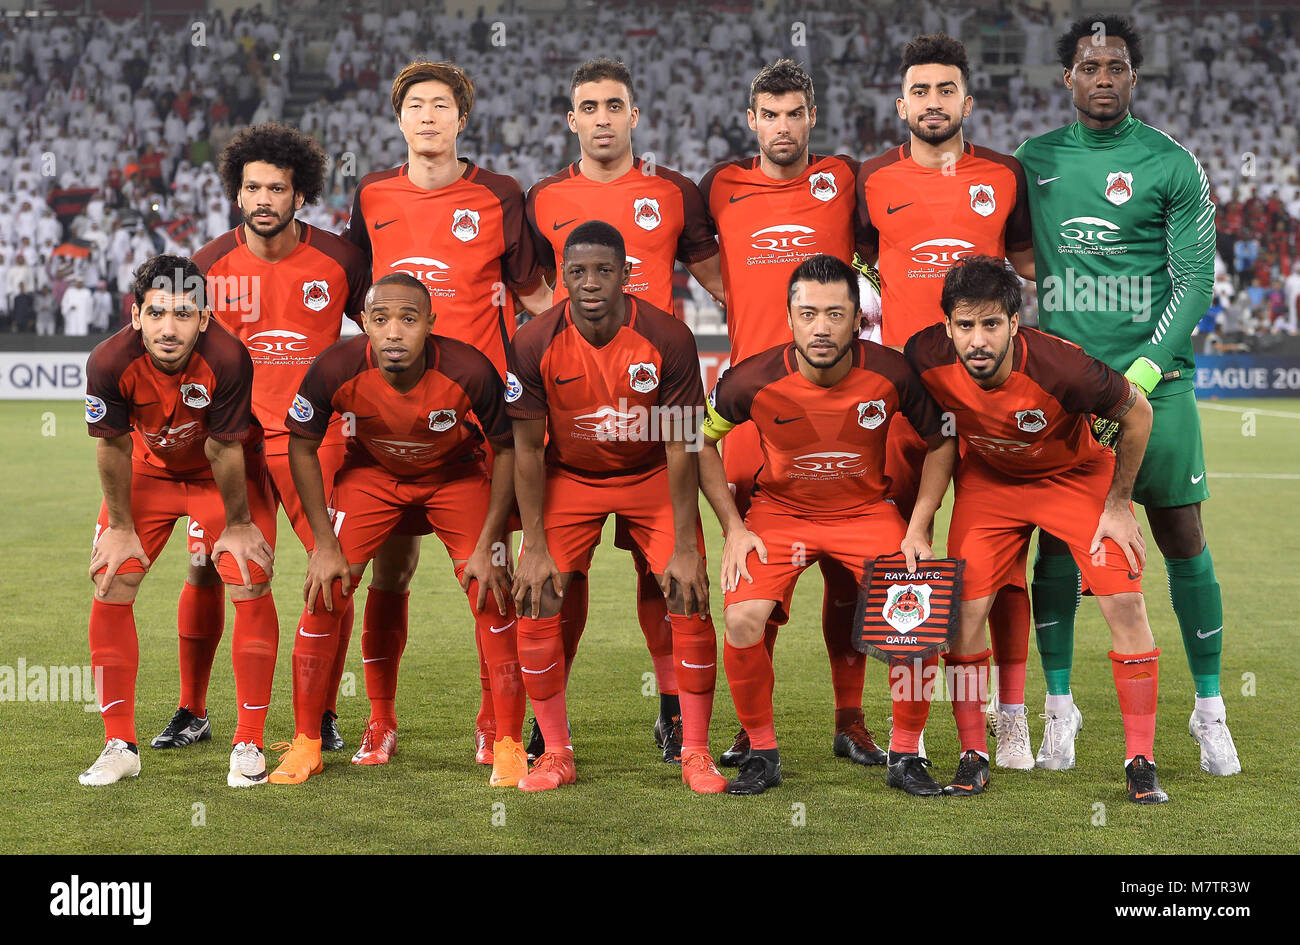 (180313) -- DOHA, March 13, 2018 (Xinhua) -- Al-Rayyan's players line up prior to the AFC Champions League Group Stock Photo